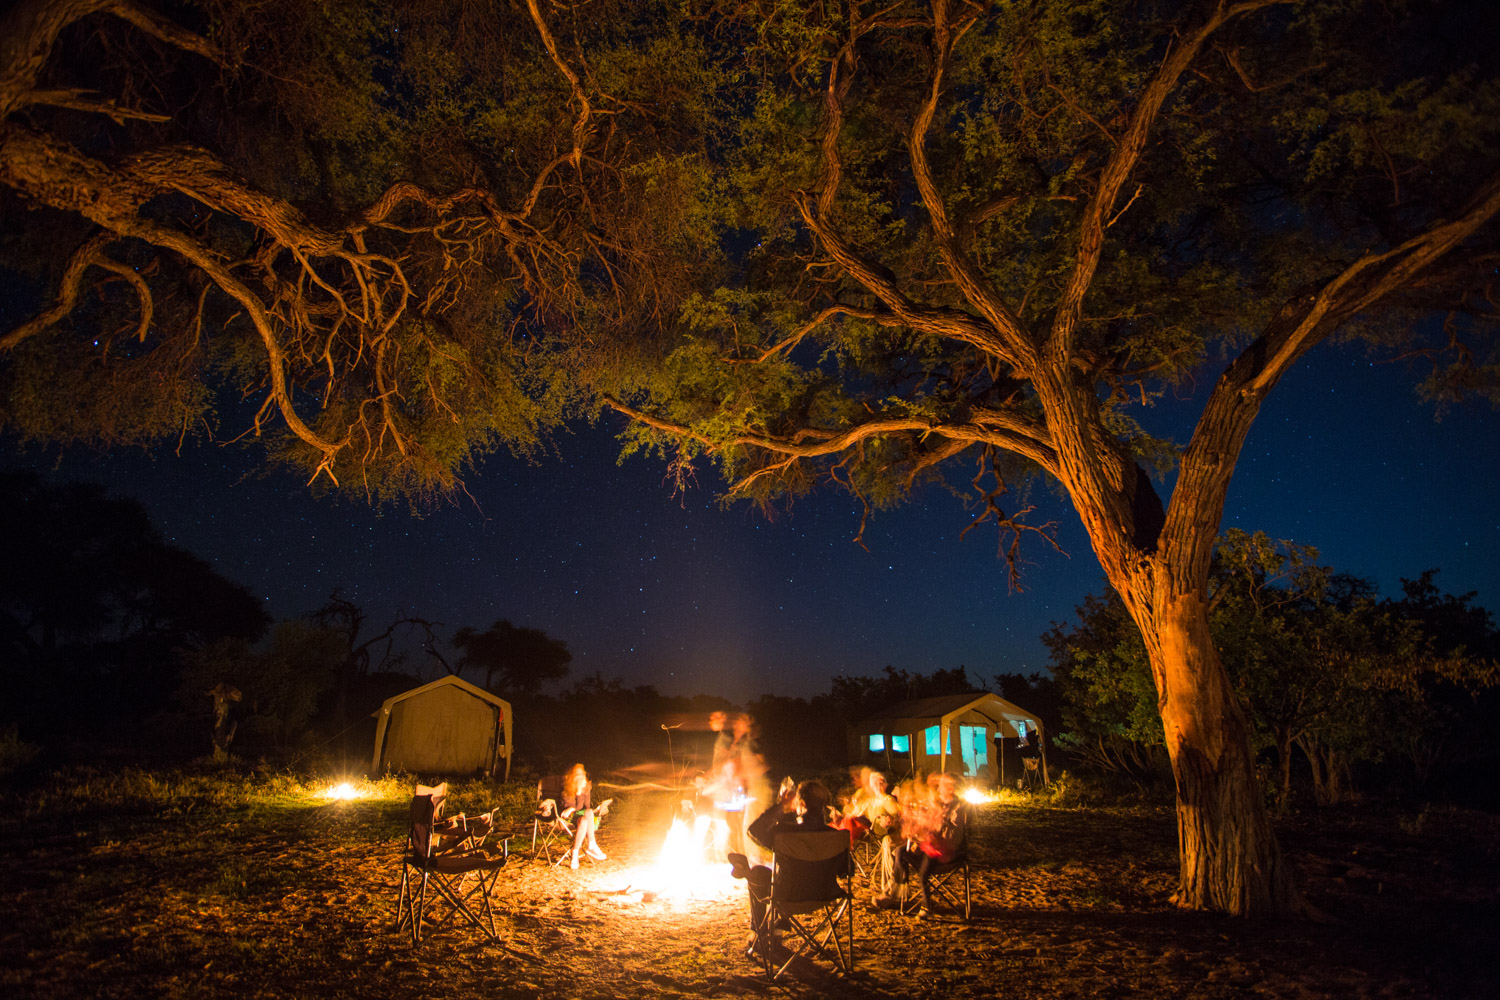 night campfire scene - Five (More) Uncomfortable Truths About Photography